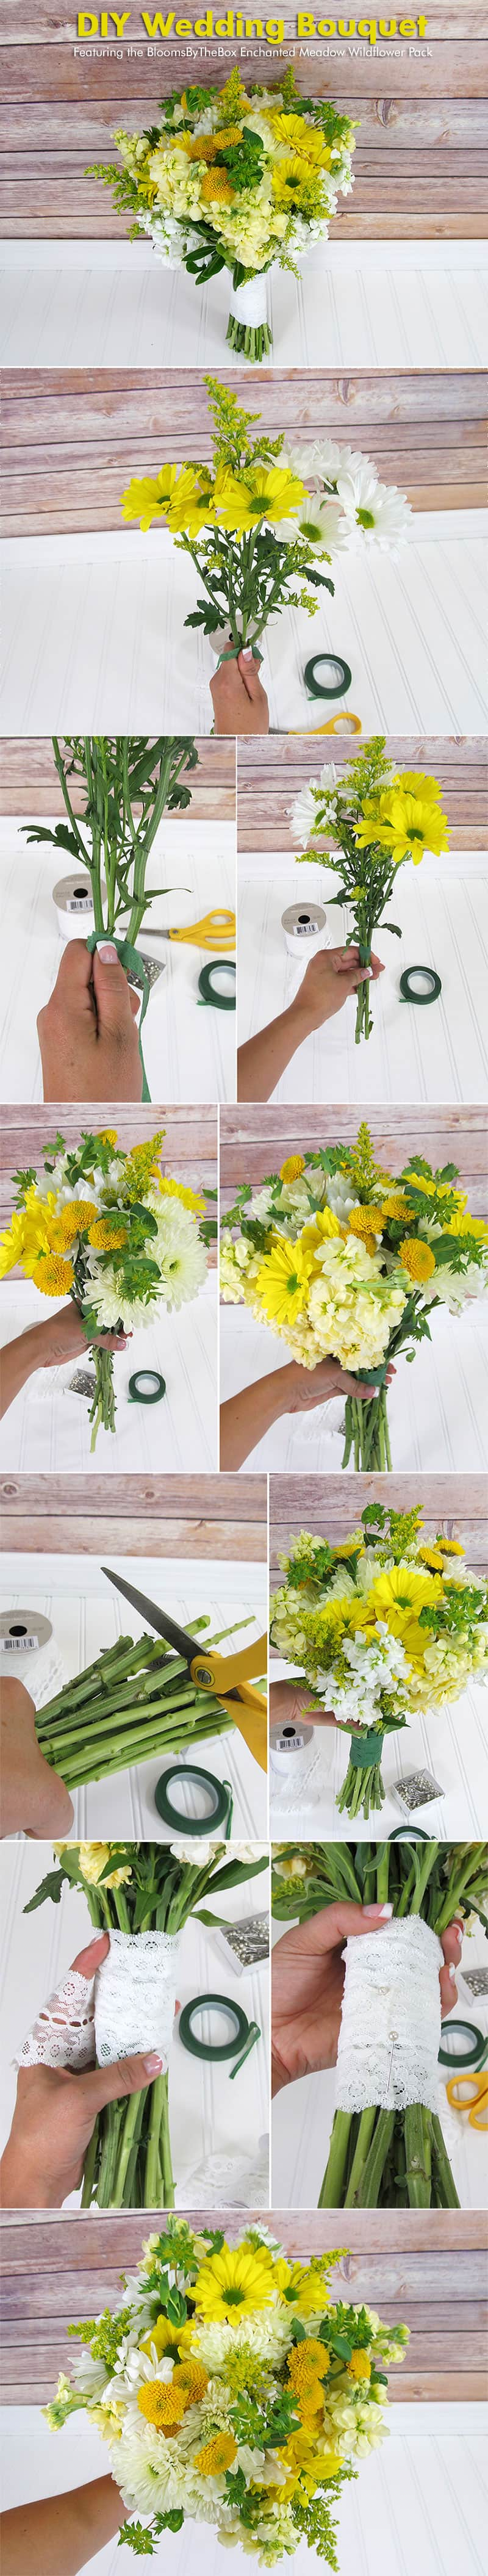 Make A Wildflower Bouquet – Photo Tutorial